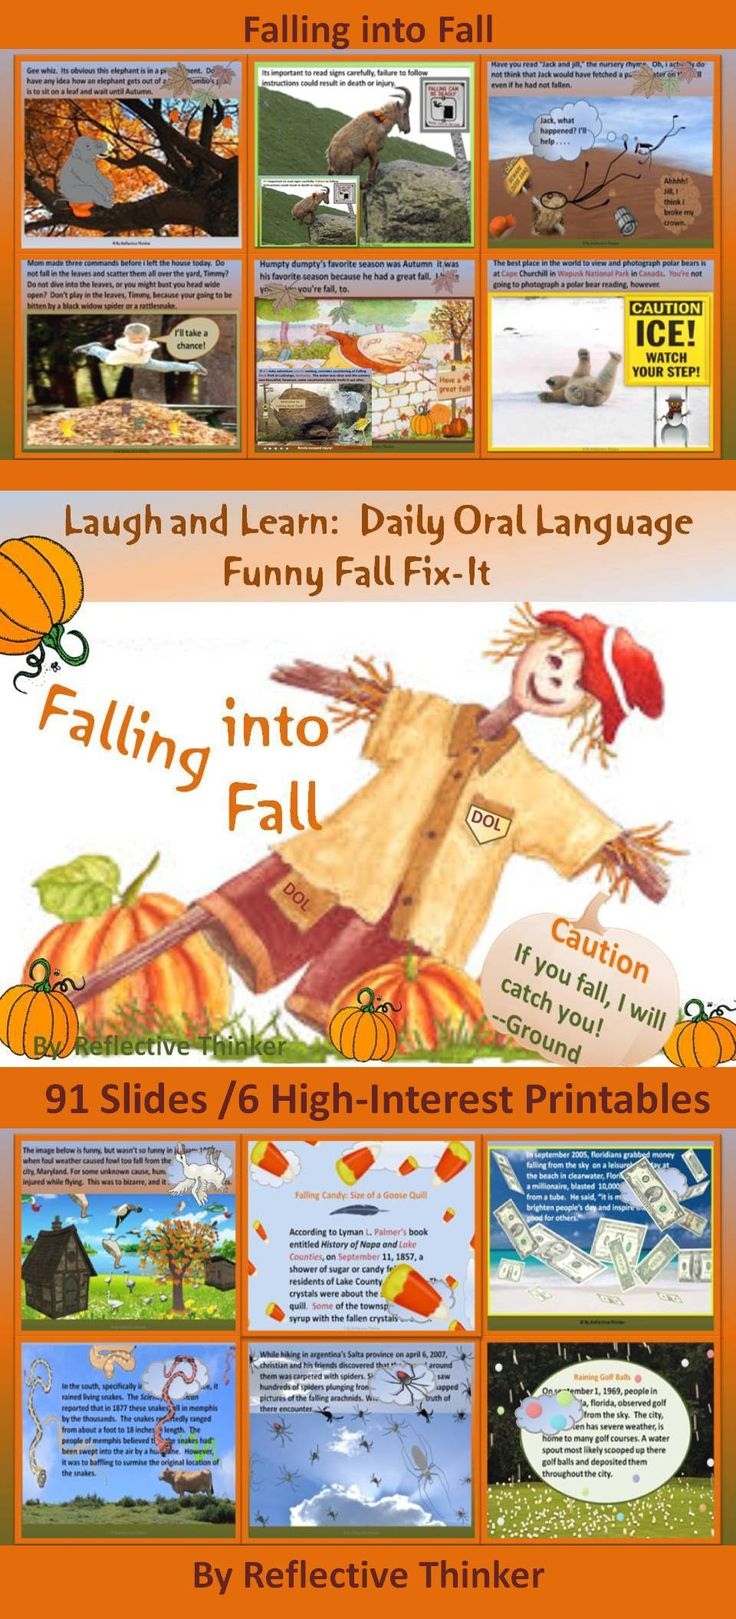 "Spice up language lessons this autumn with ""Falling into Fall,"" a resource filled with high-interest passages, printables, and pictures created to add pizzazz and humor to Daily Oral Language (DOL) and/or everyday edits. Many of the stories, which concern mysterious items that have fallen from the sky, are true. The DOL passages contain common grammatical errors made by all age groups. An awesome bell ringer activity this fall! #fall #dailyorallanguage #everydayedits #grammar #editing"